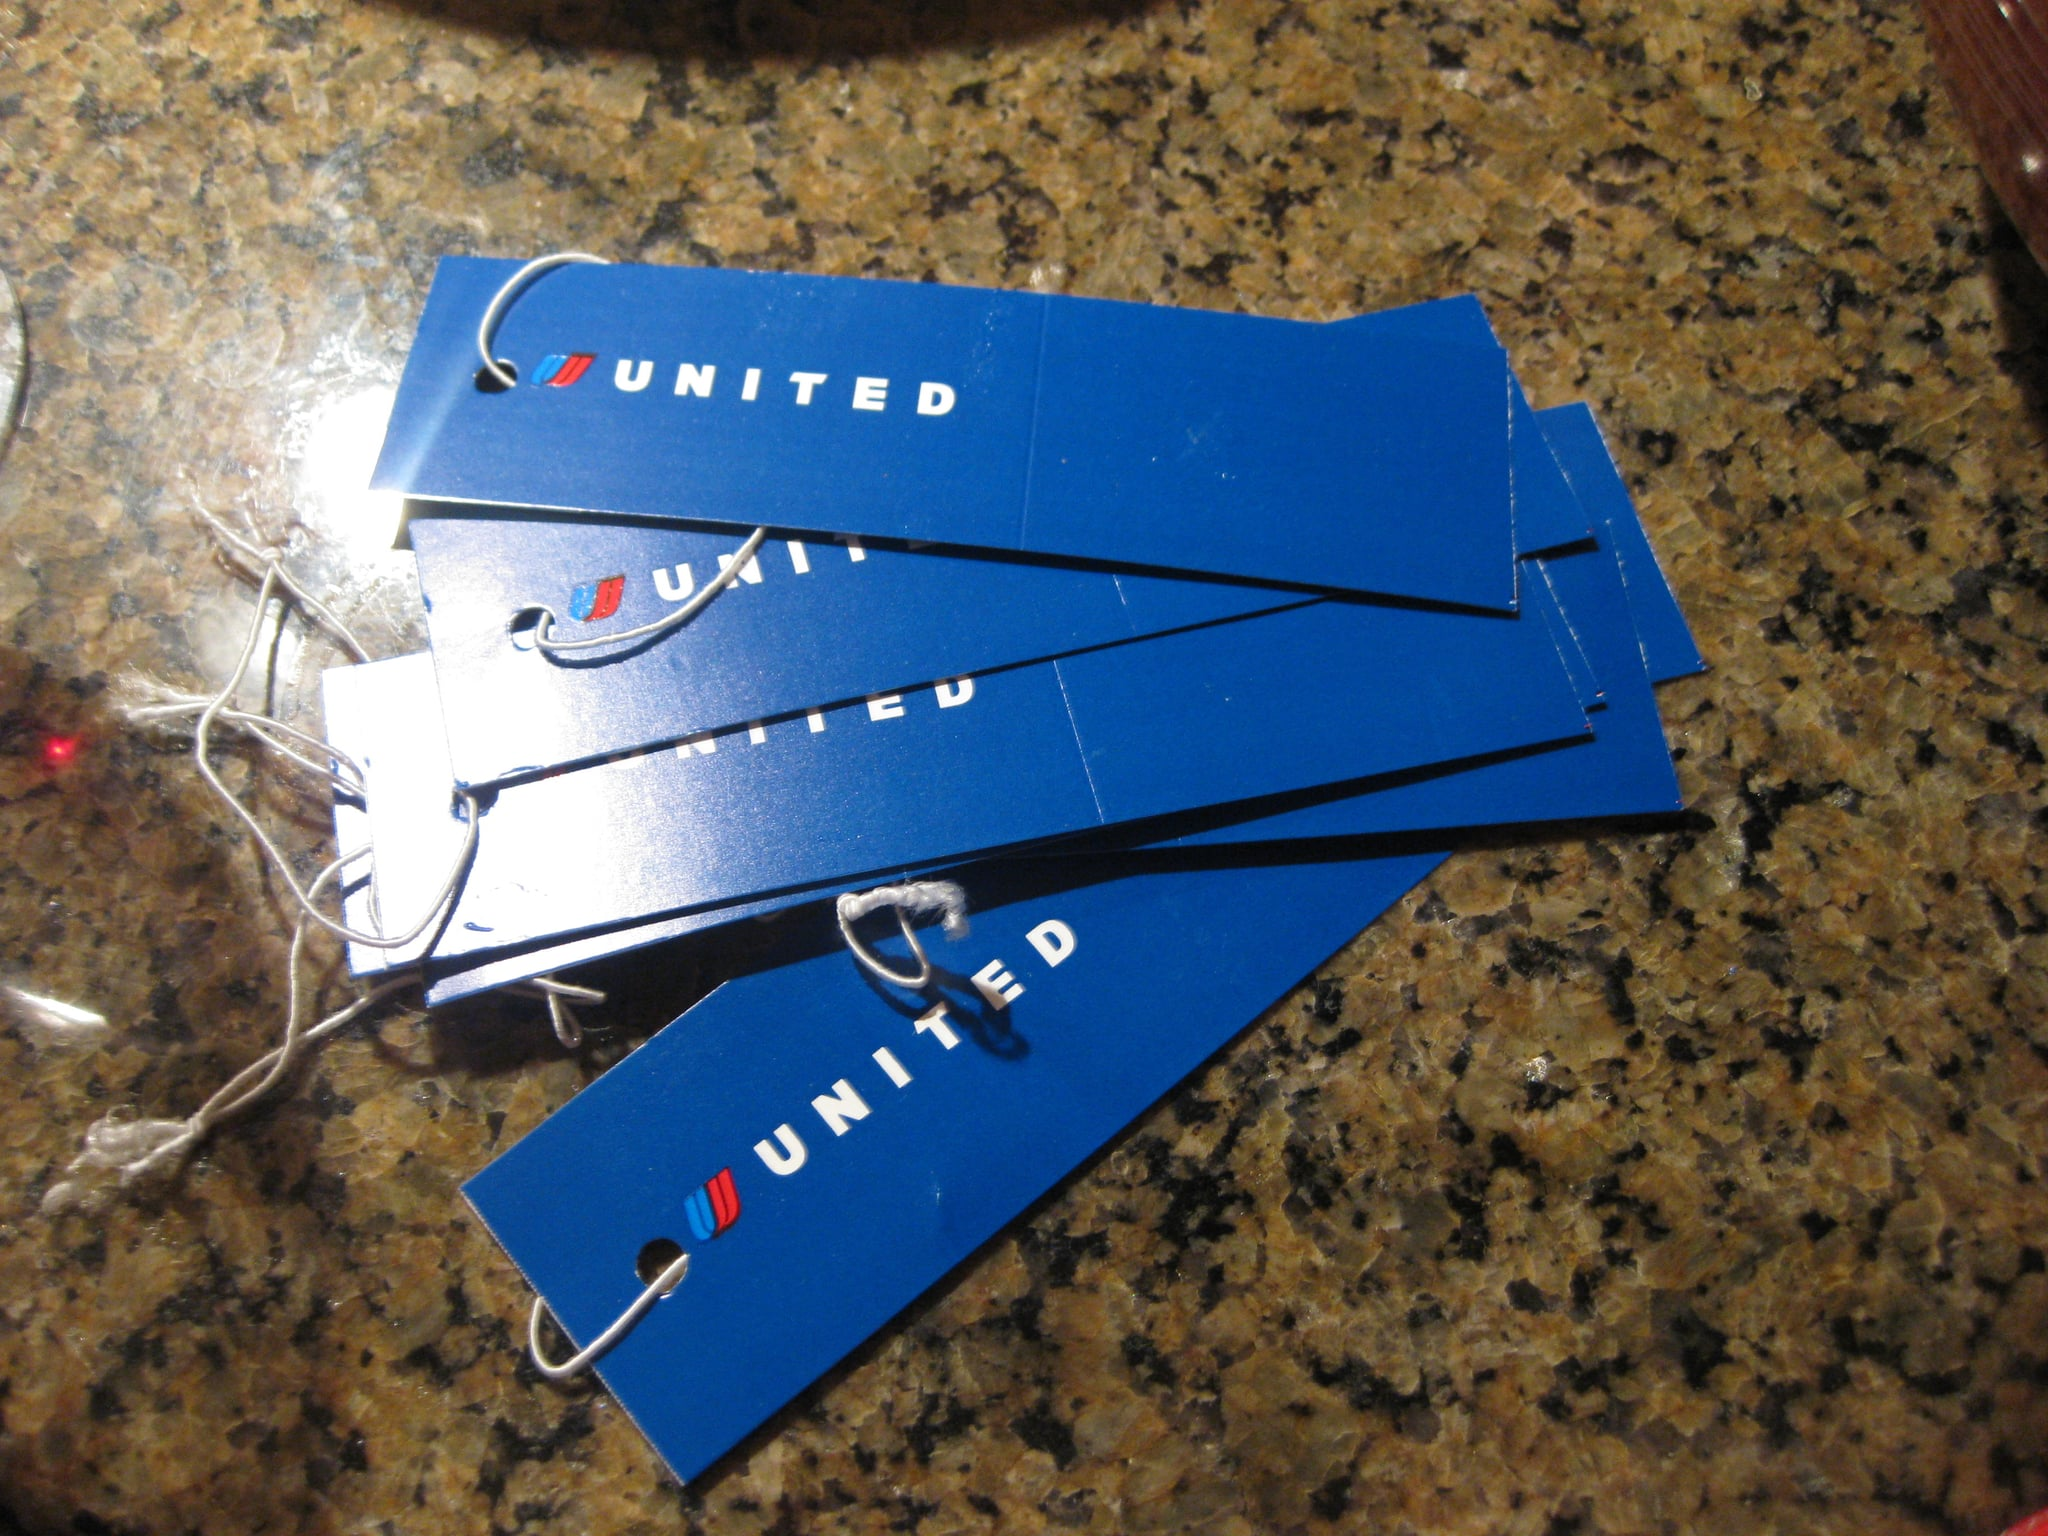 Everyone who walked in was told to wear a United luggage tag.